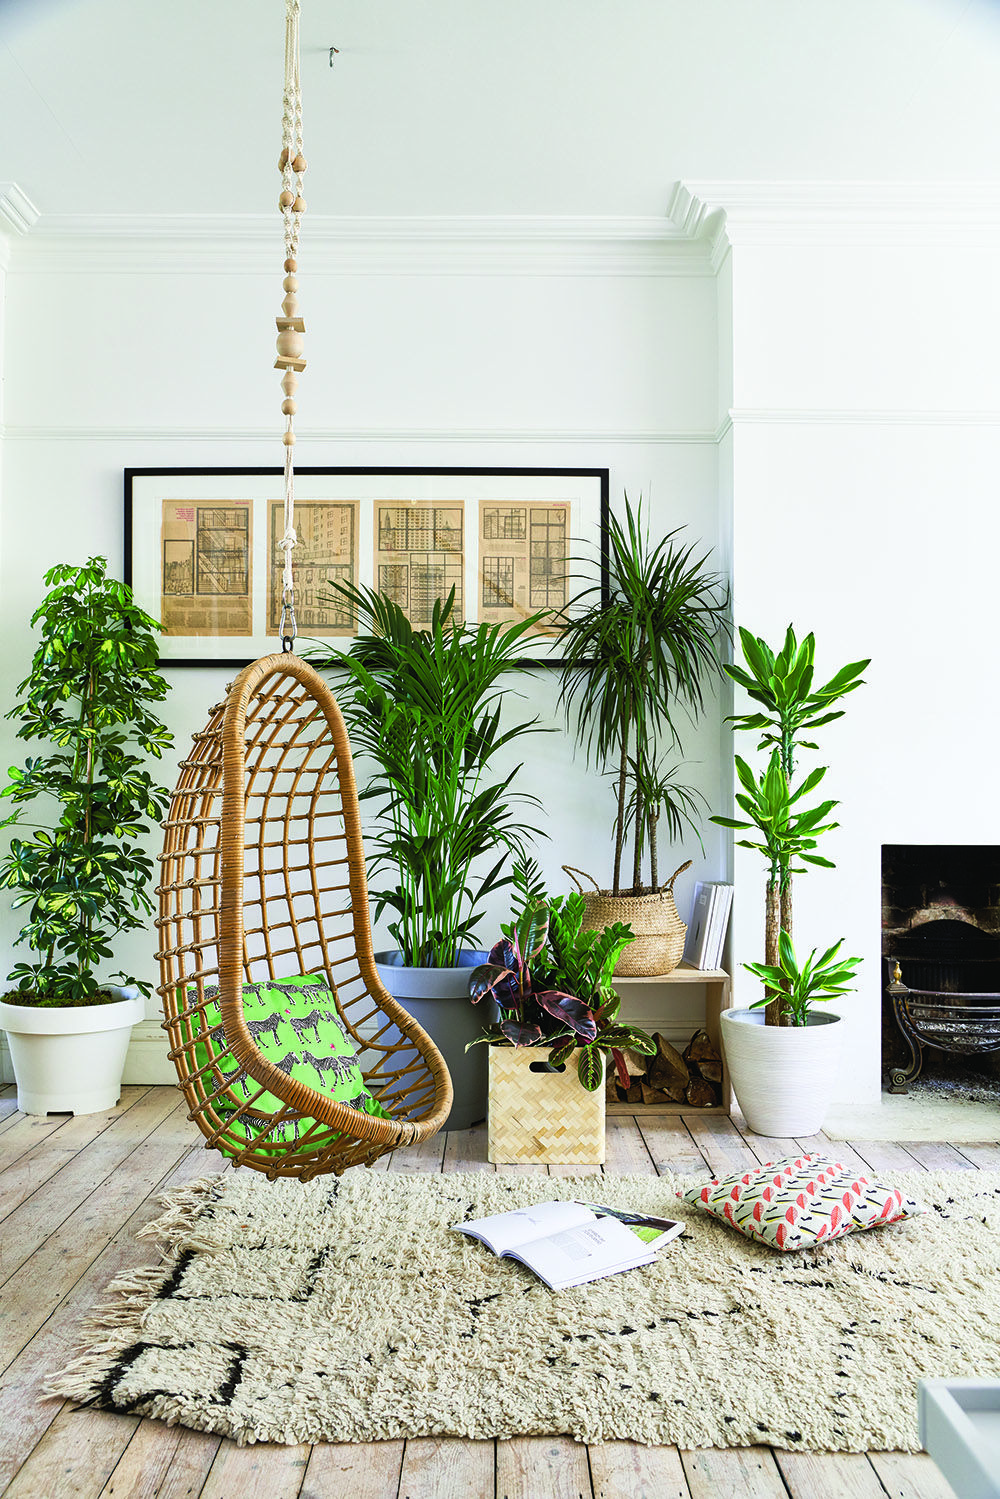 Nice On The Blog  Review Of An Amazing New Book, U0027At Home With Plantsu0027 By Ian  Drummond And Kara Ou0027Reilly, Which We Think Is The Definitive Guide To House  Plants.